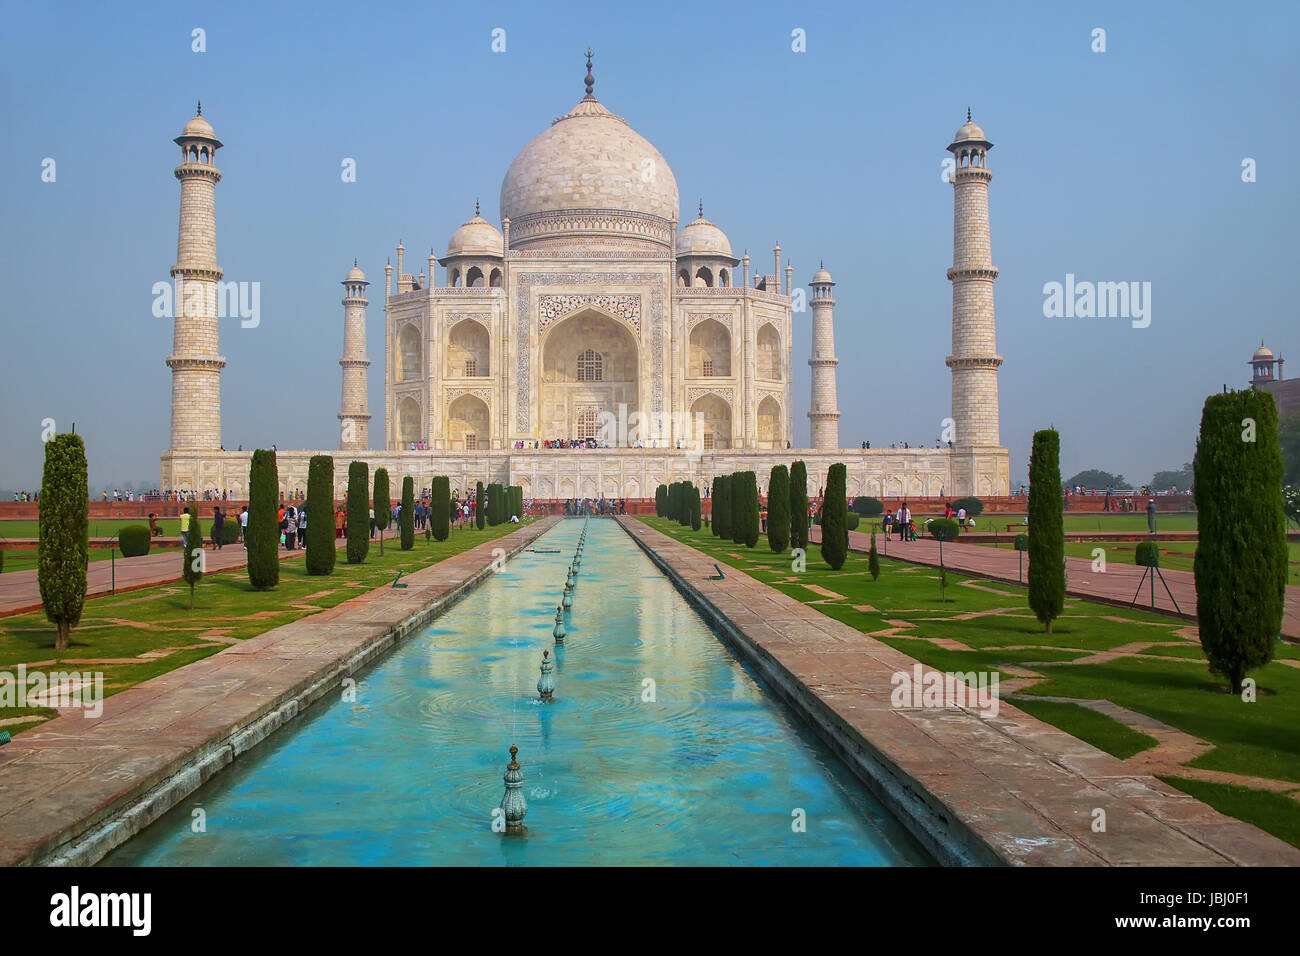 Taj Mahal with reflecting pool in Agra, Uttar Pradesh, India. It was build in 1632 by Emperor Shah Jahan as a memorial - Stock Image